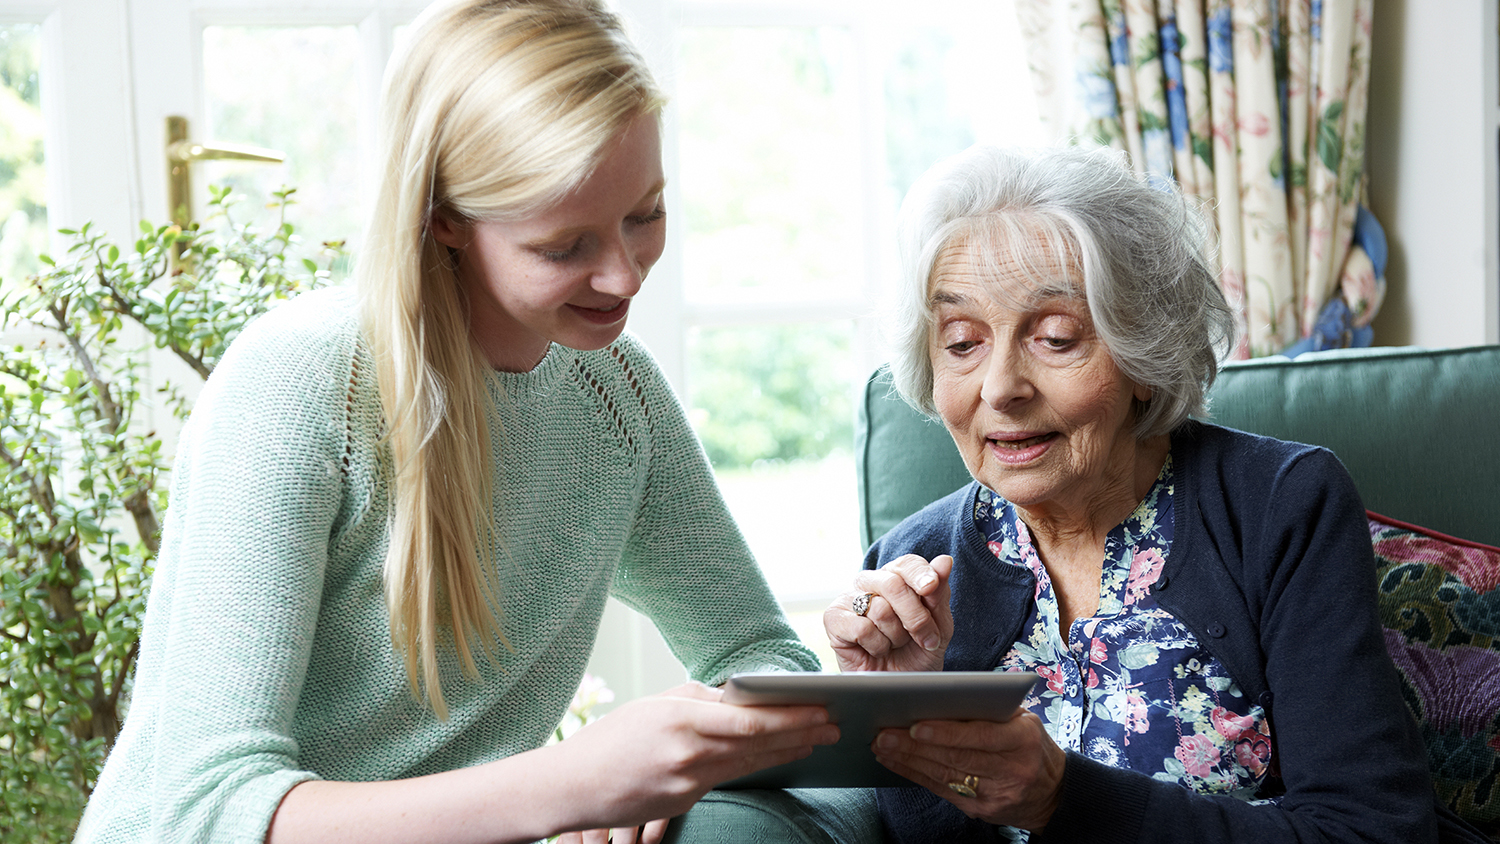 featured image for UMaine Student Volunteer Scribes Needed for People Living with Dementia